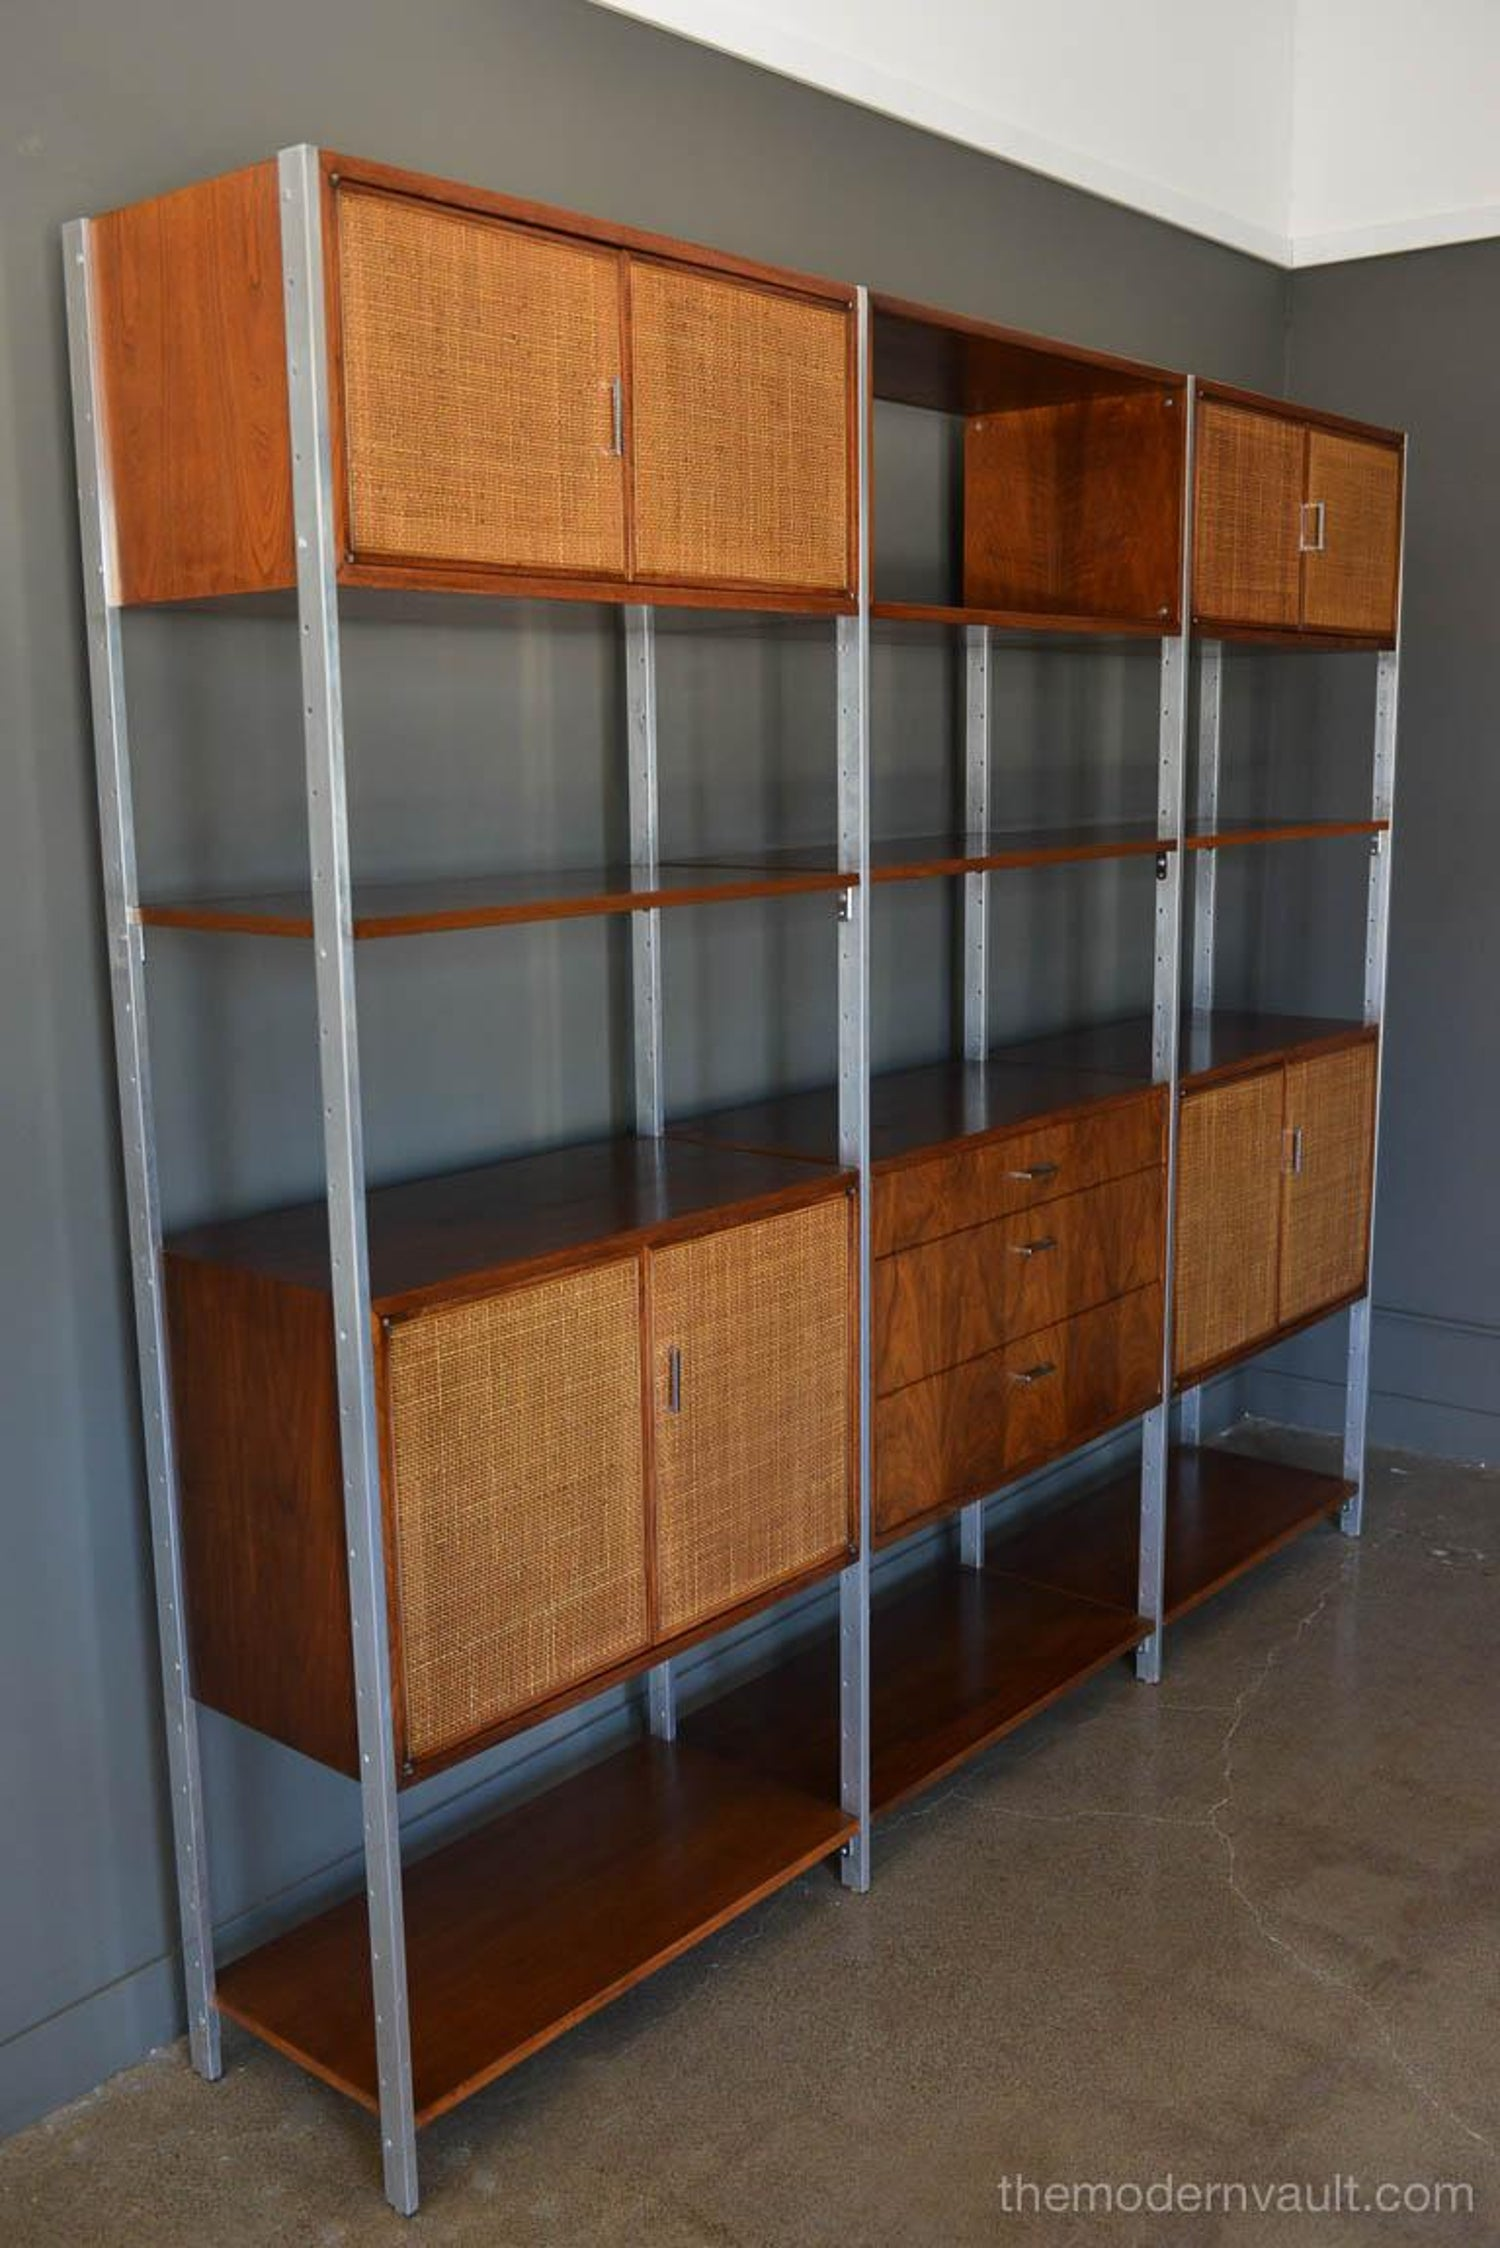 Walnut, Cane And Aluminum Wall Unit Or Room Divider By